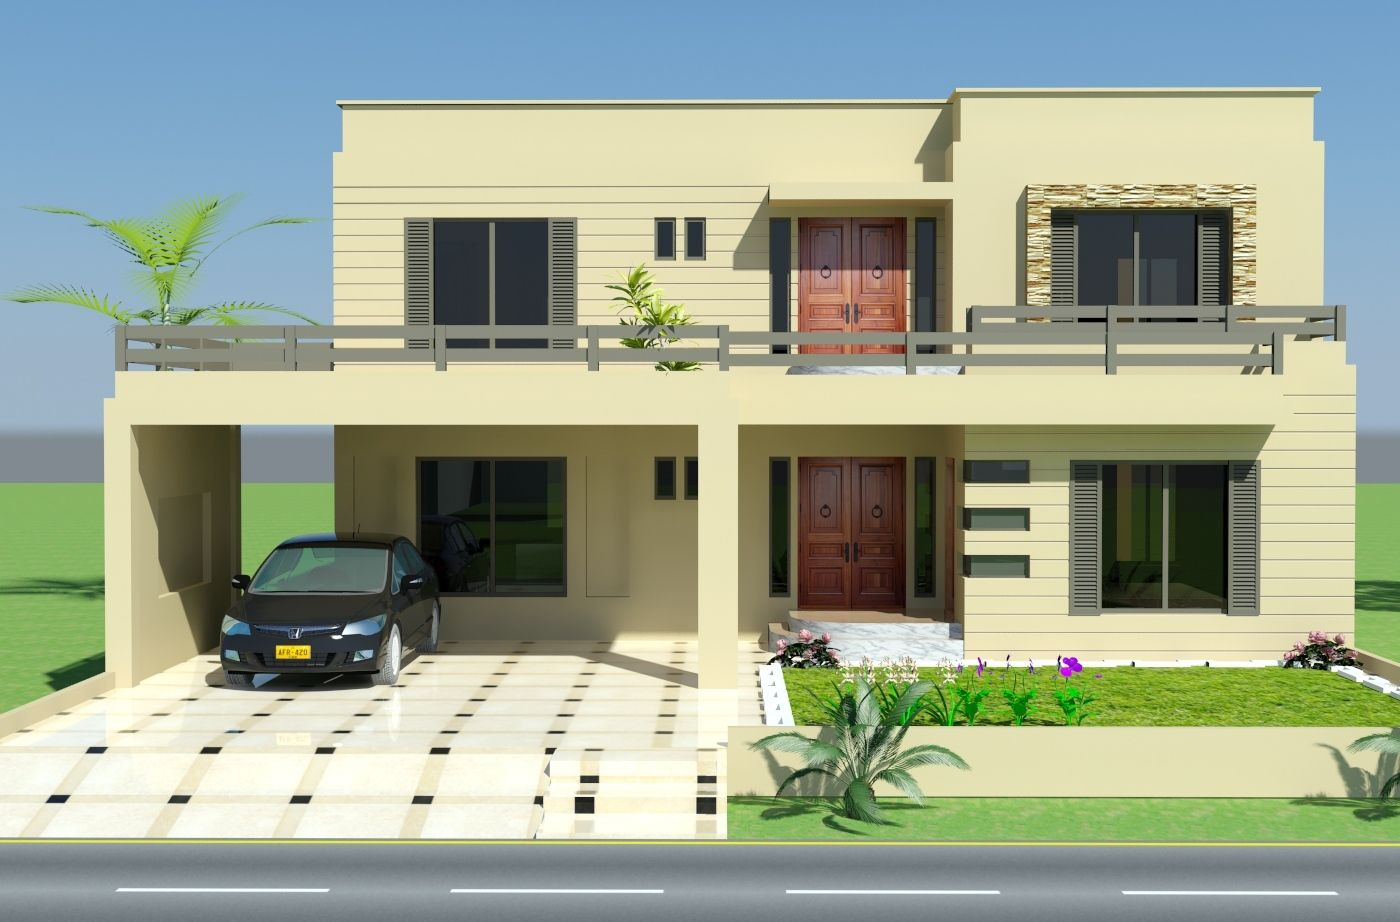 front house elevation design small designs view modern | Home Design on free home evaluation, free art designs, free home plans, free lifestyle, free pics of homes, free home names, small master bathroom tile design, free house building plans, free home health, free home graphics, free home energy, free small house plans, free home templates, free home interior, free movies, free home print, free home backgrounds, free patio designs, free home layout, free home art,